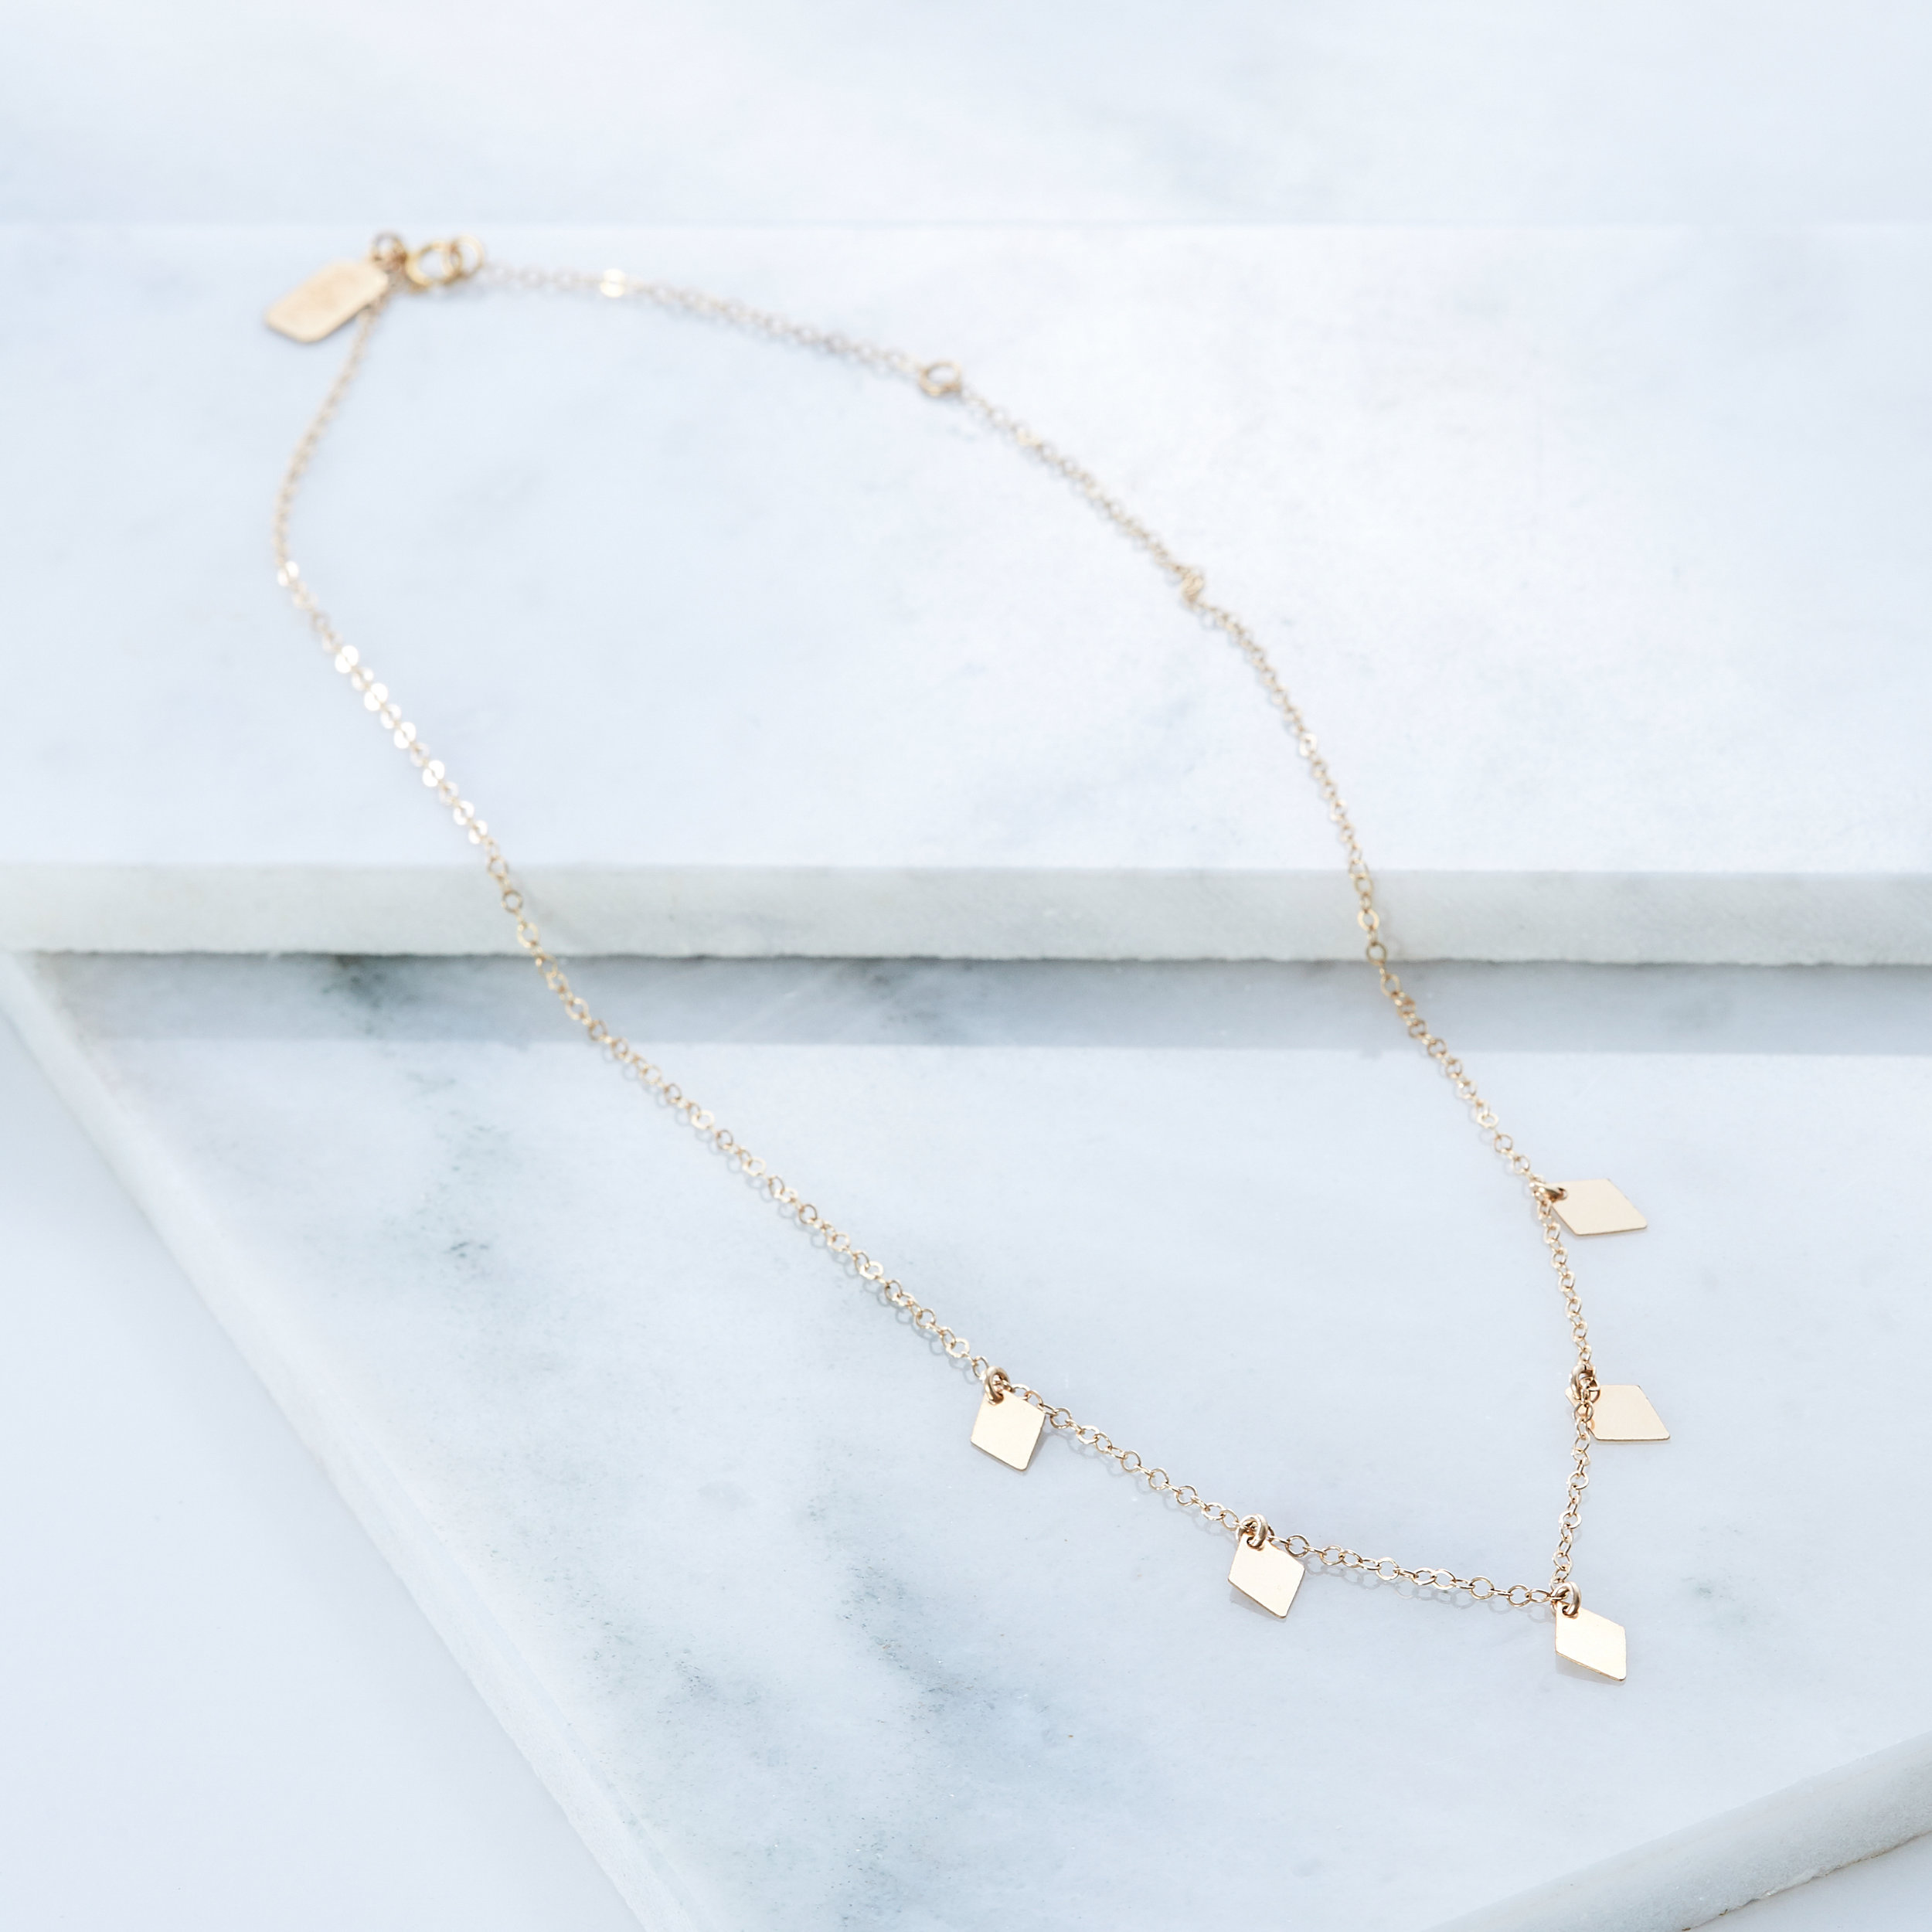 Scattered Diamonds Necklace